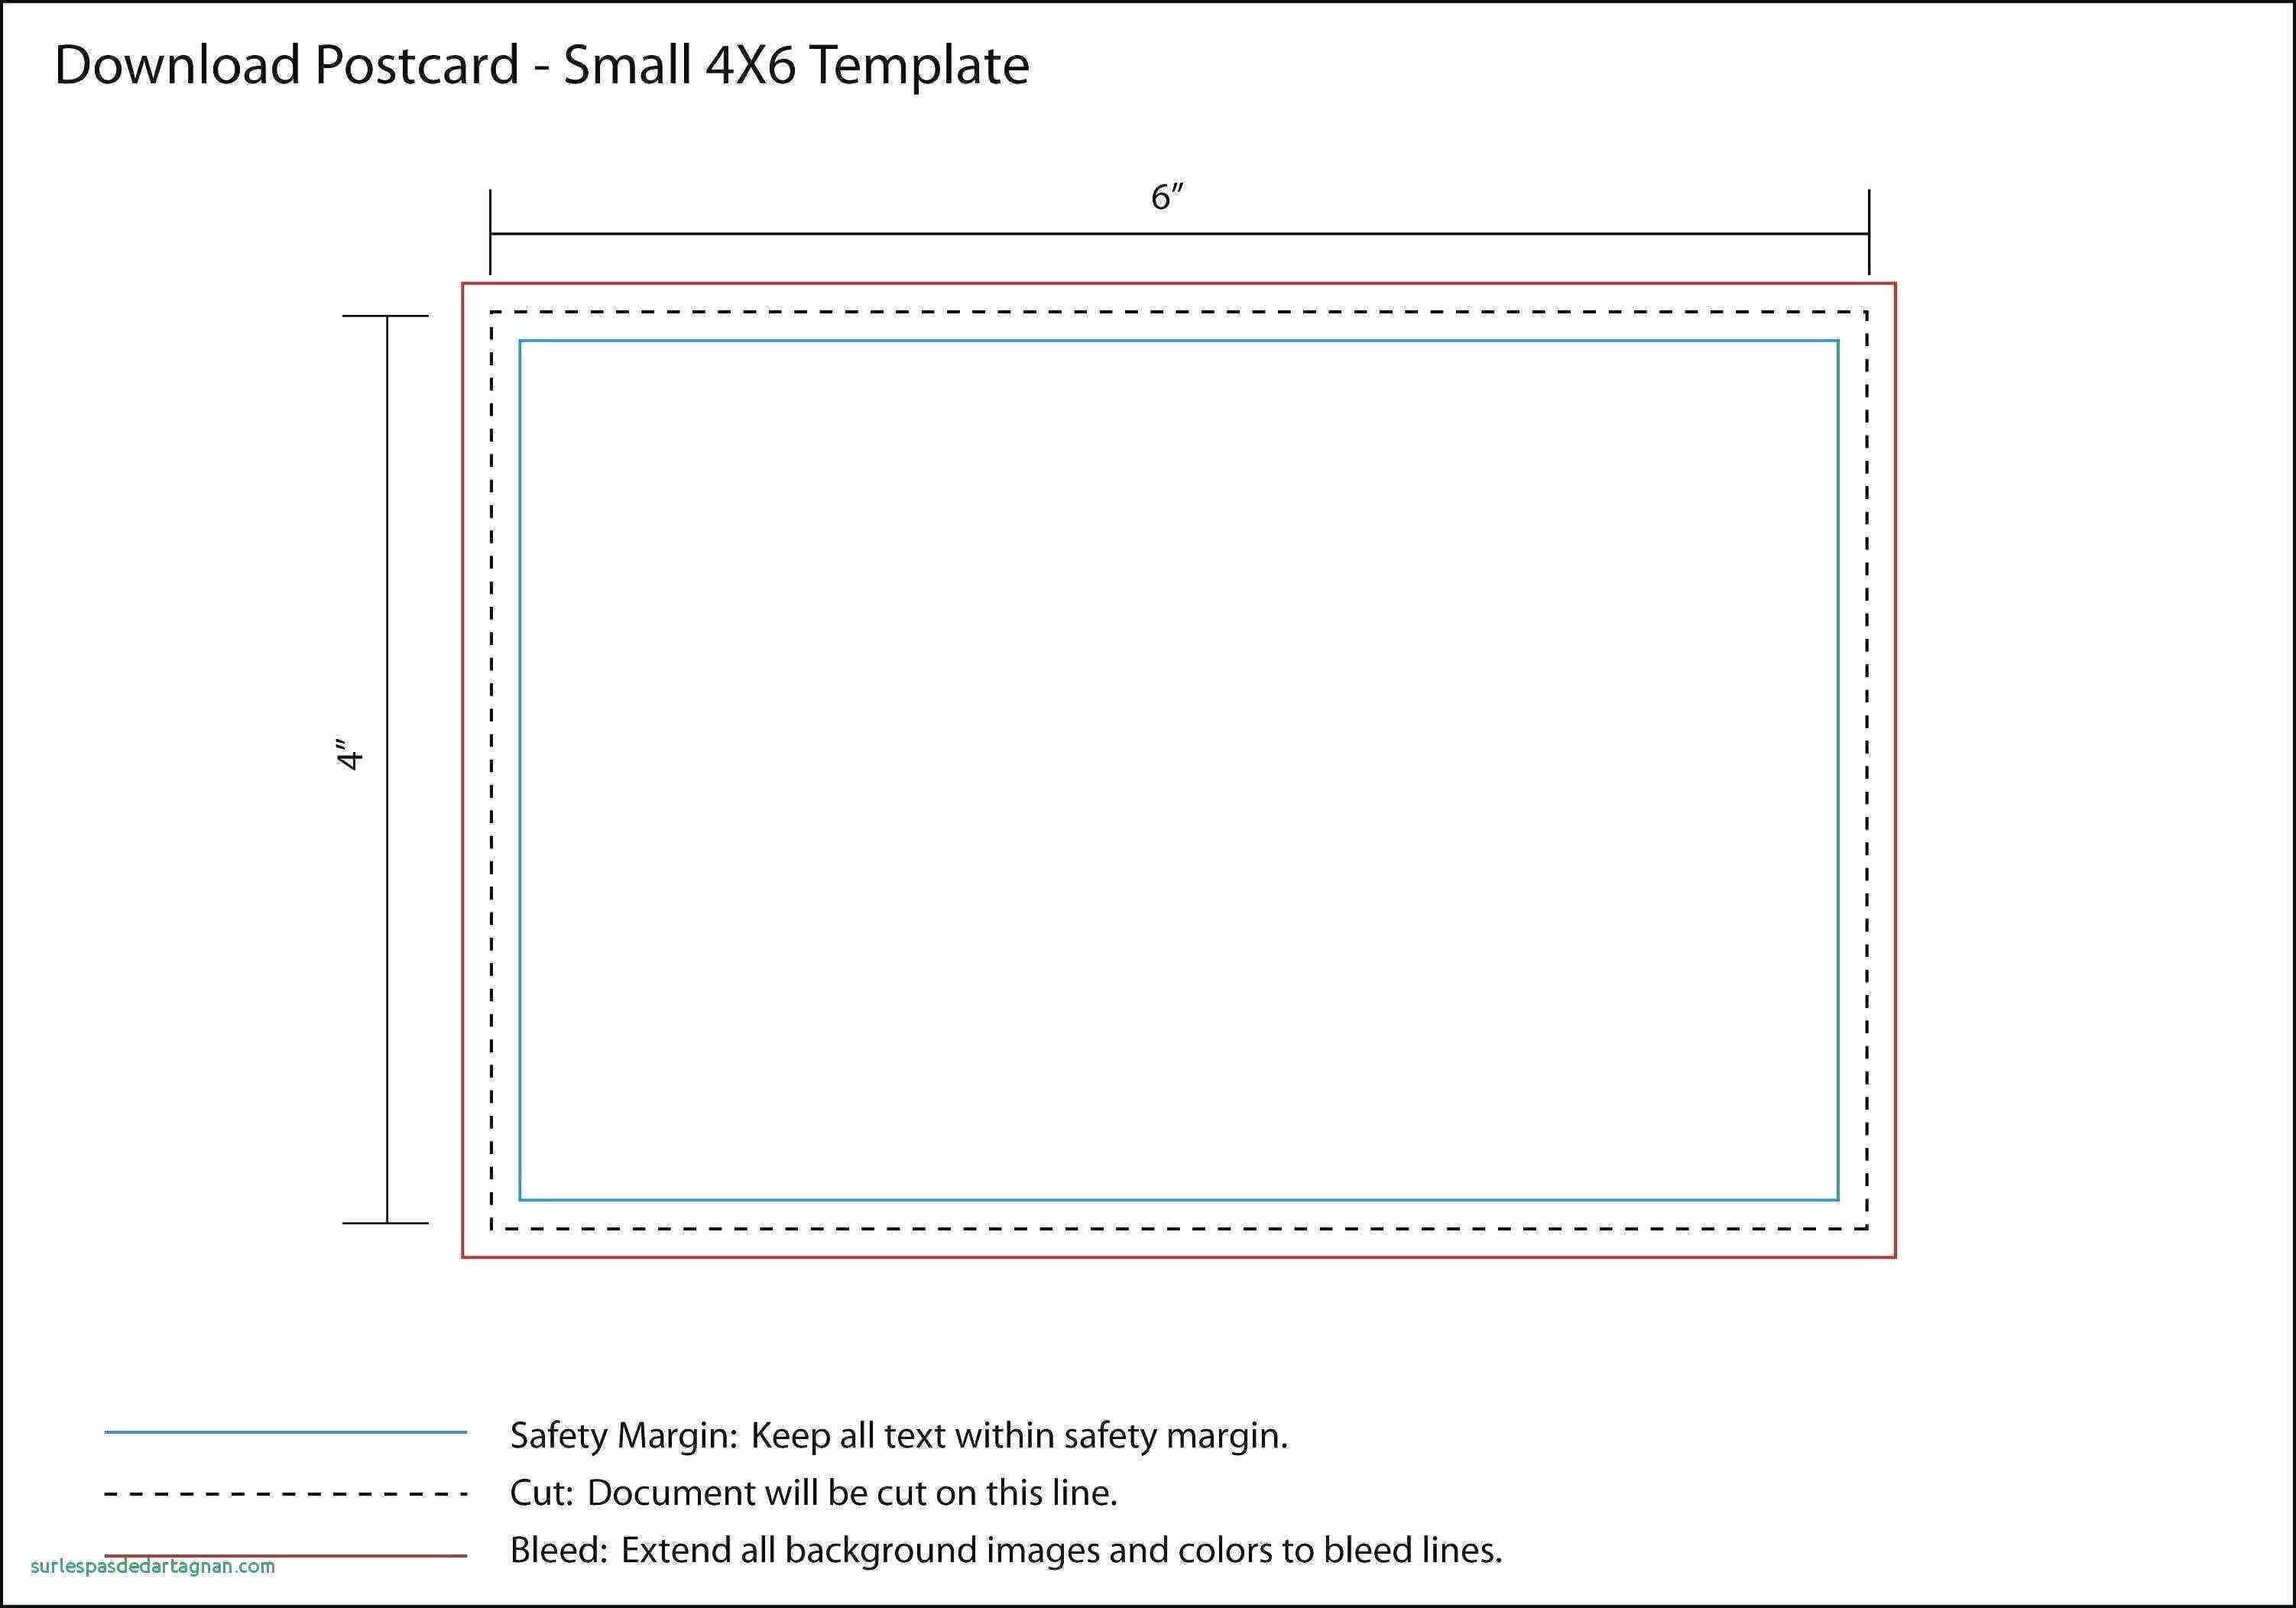 30 Note Card Template Google Docs | Pryncepality with regard to Index Card Template Google Docs